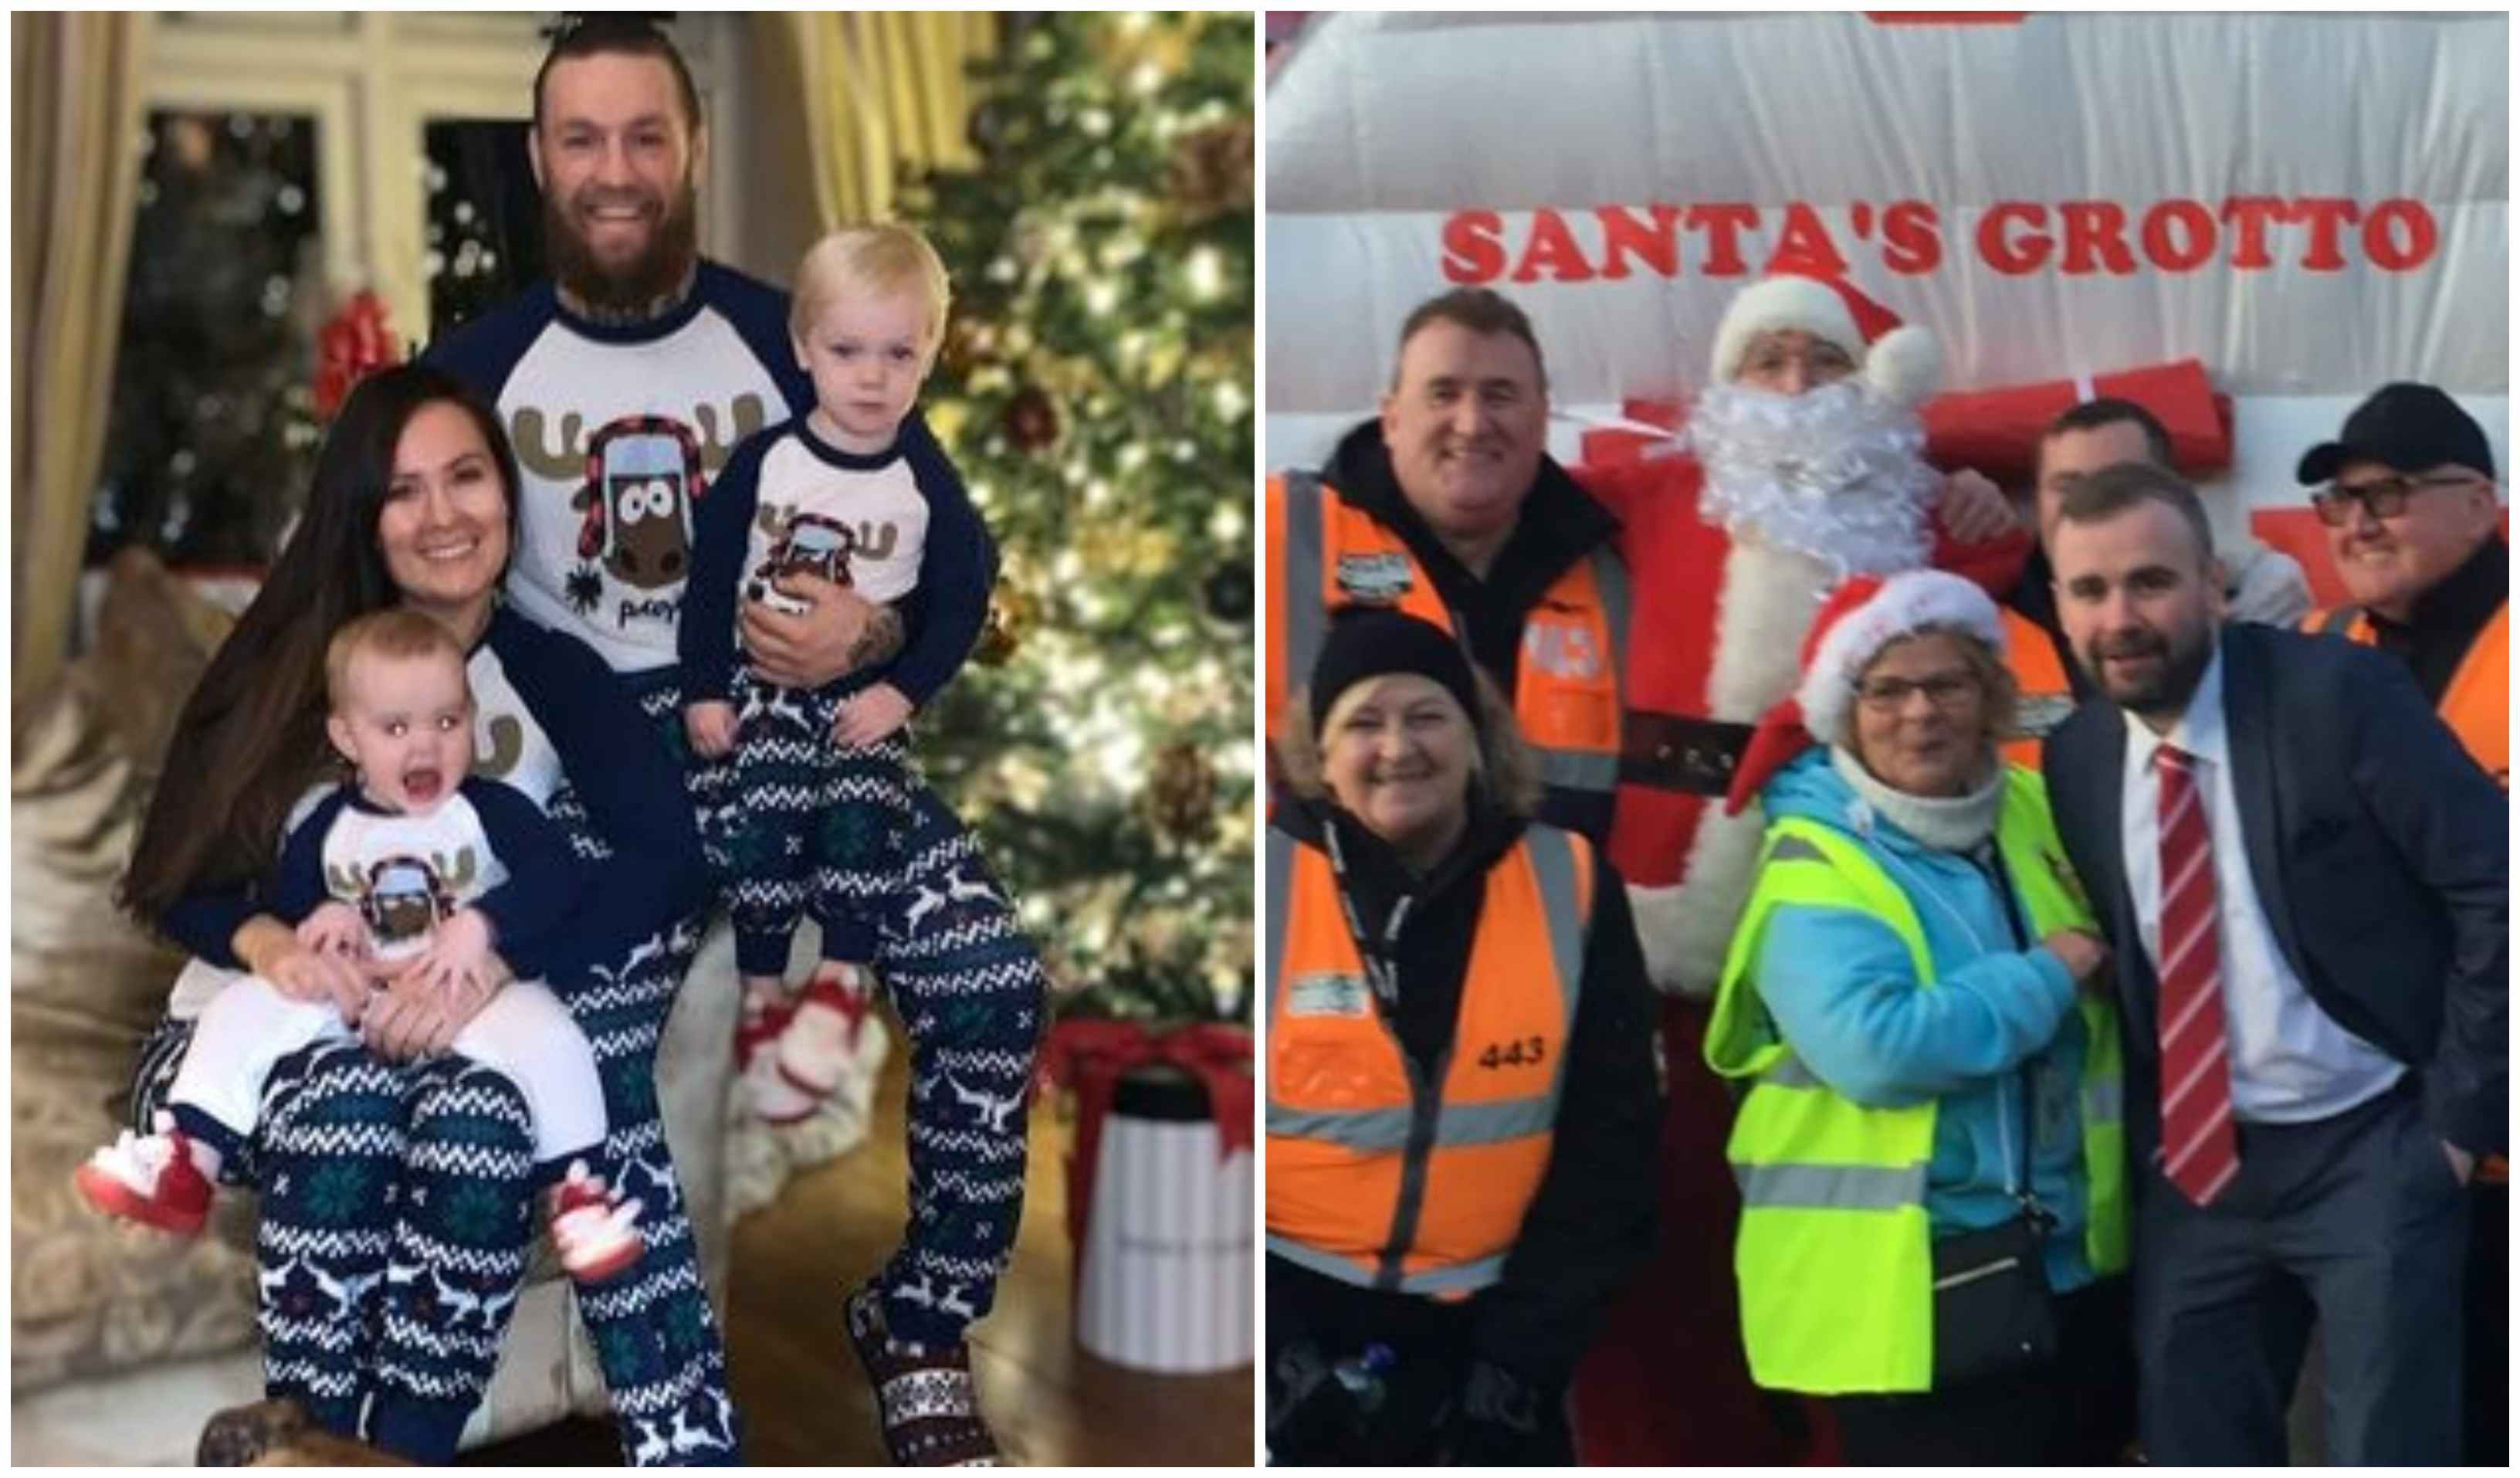 Conor McGregor and partner Dee Devlin donate $27,000 worth of toy vouchers to children for X'mas! - cONOR